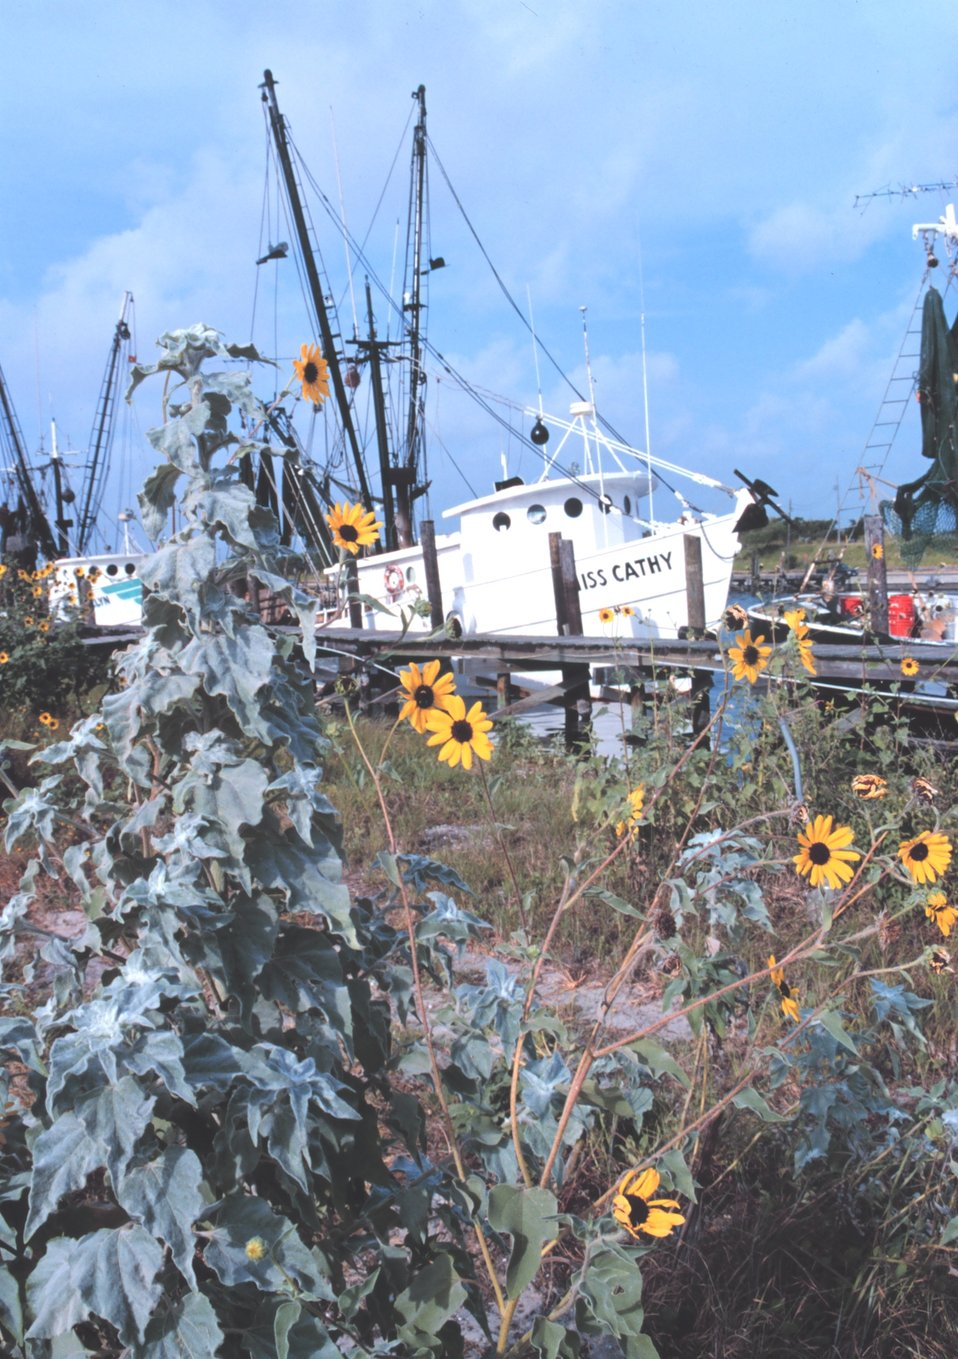 Shrimp boats and sunflowers at Conn Brown Harbor